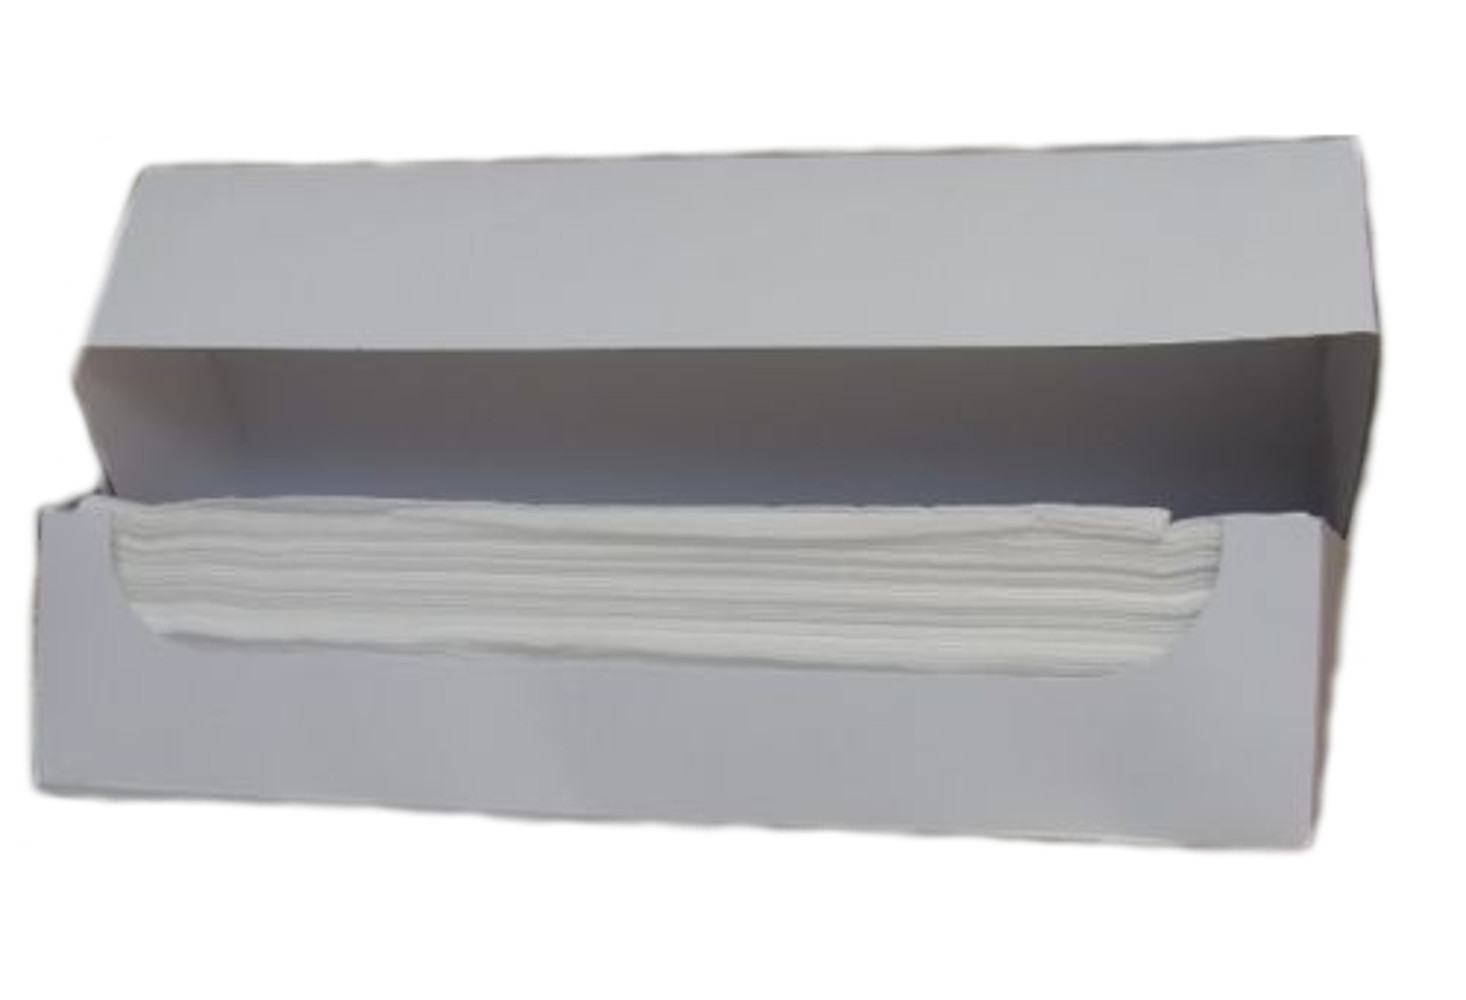 Grade 20 Cheesecloth 80 Yard Box - White